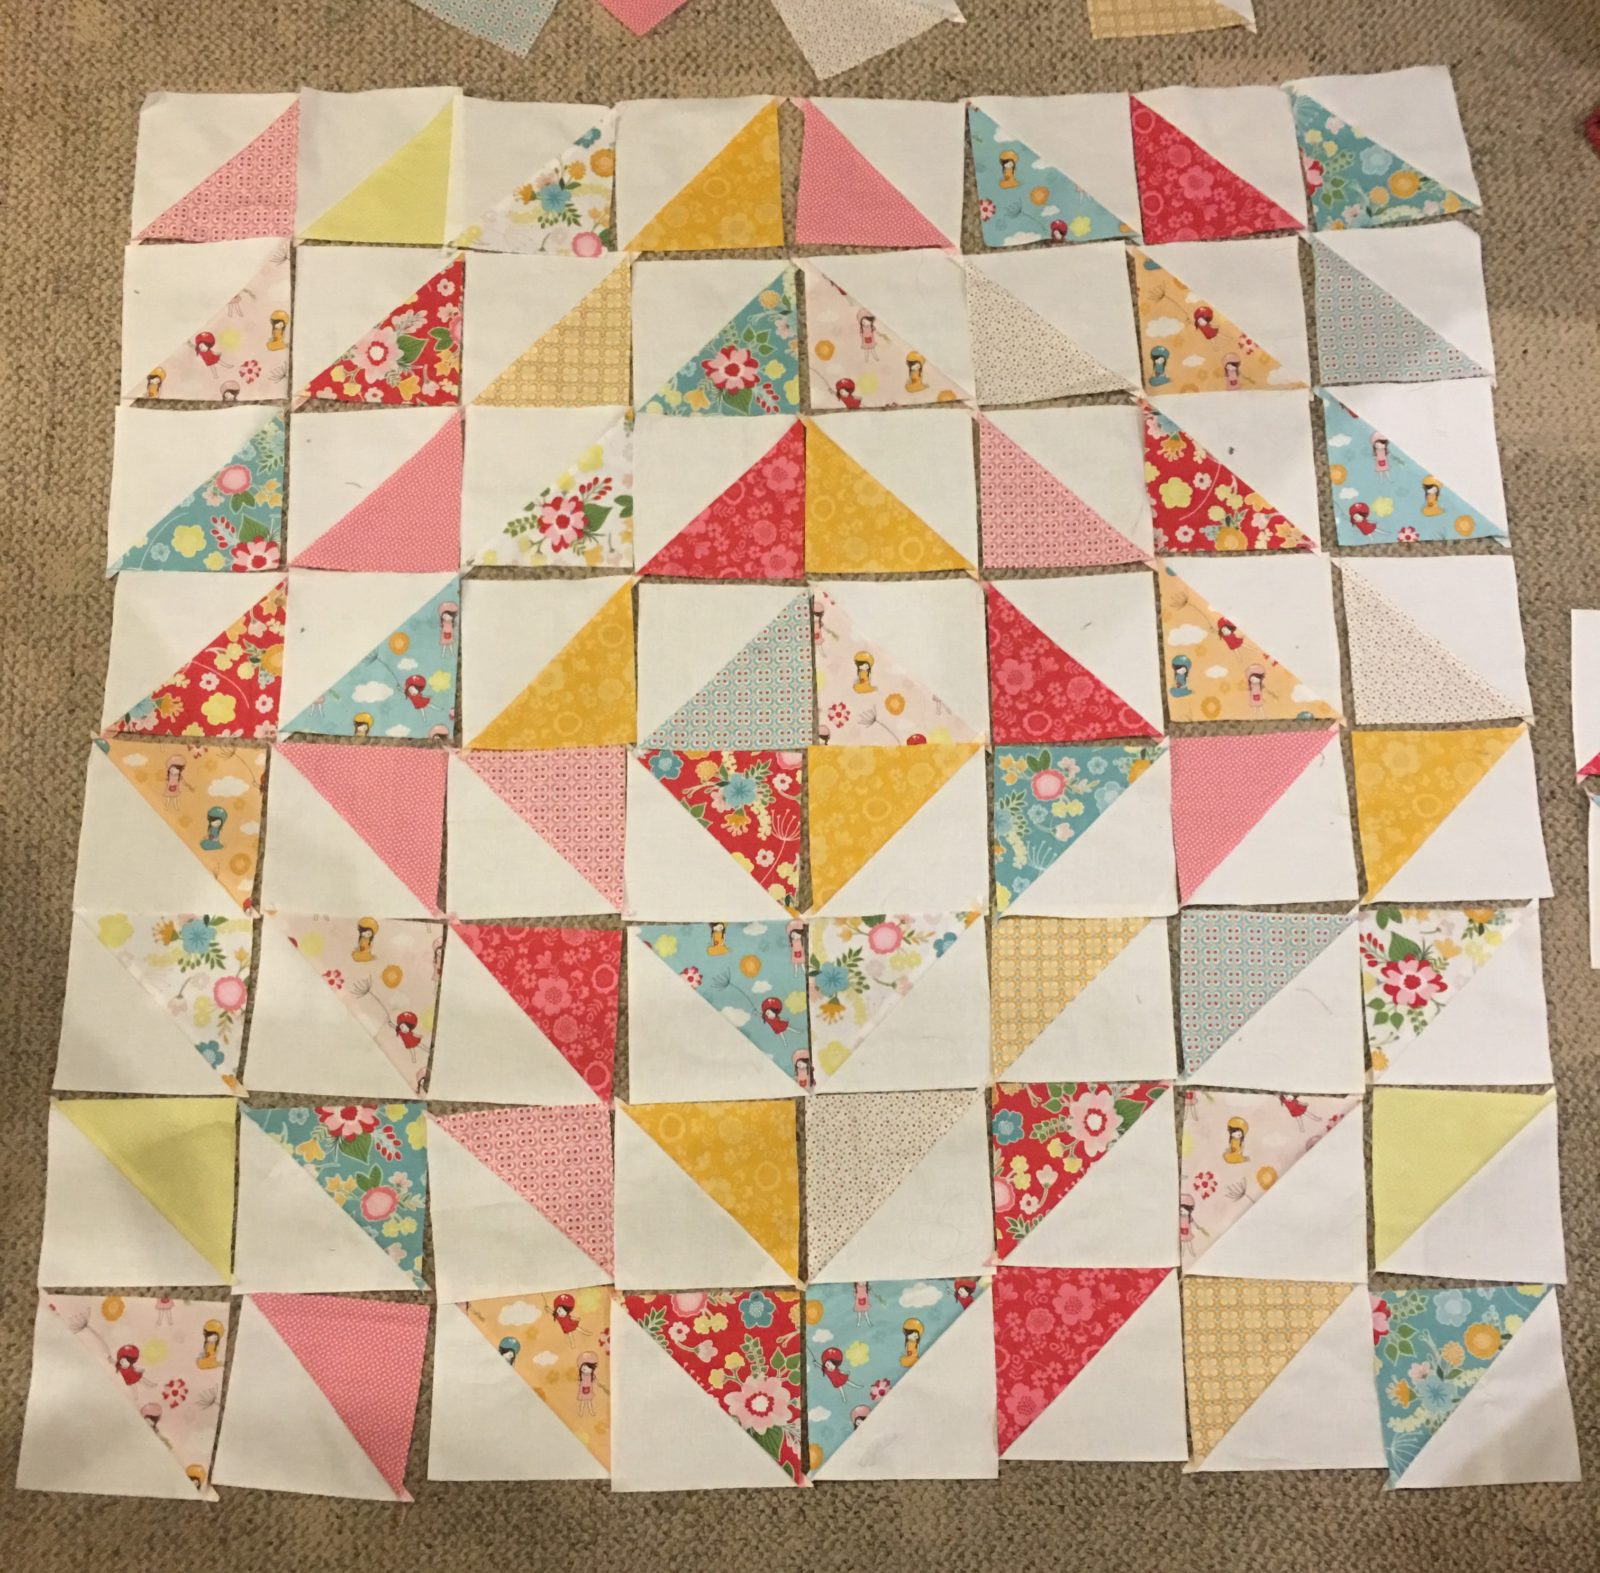 planning-the-layout-for-wistful-winds-radiant-hope-quilt